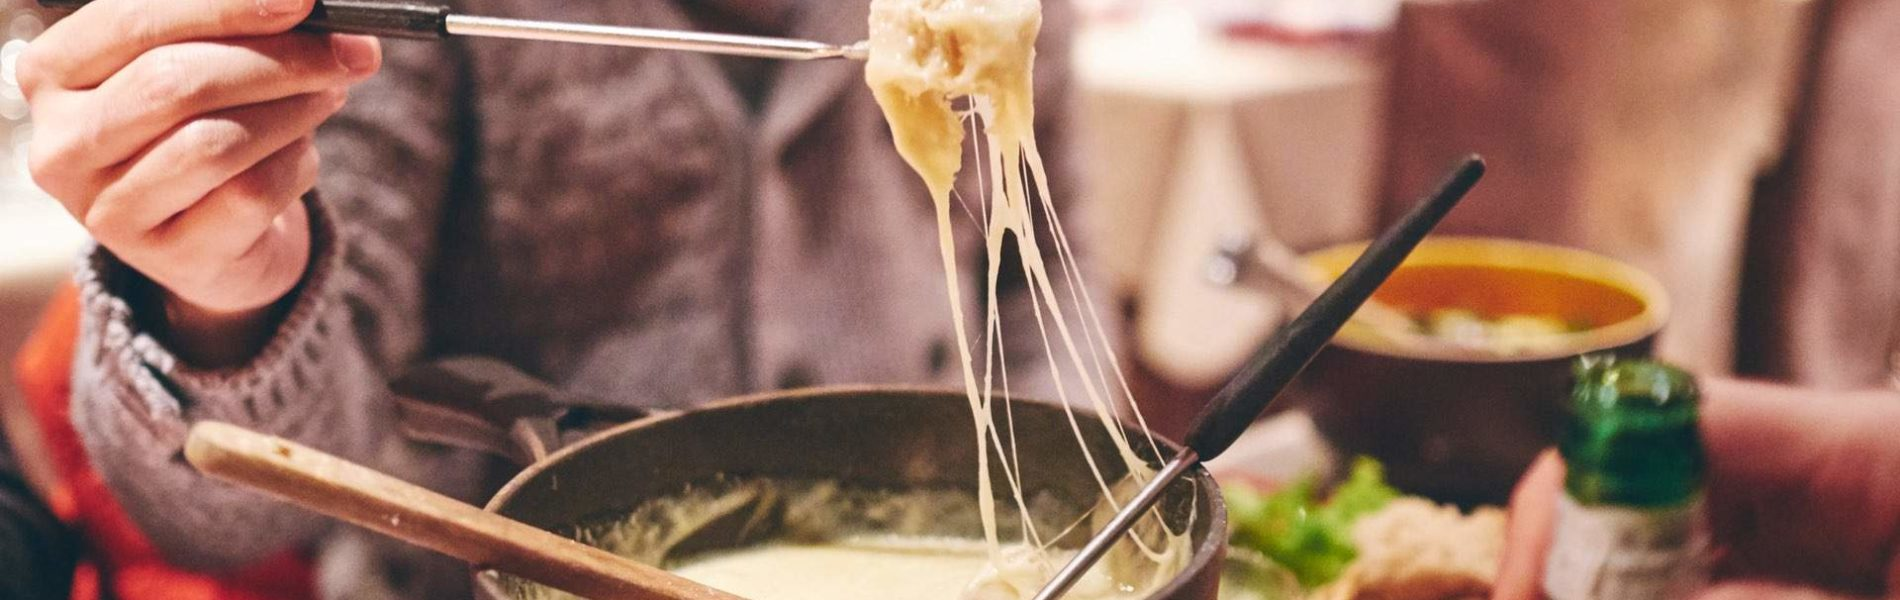 cheese-dome-fondue-sydney-supplied-1920x1080